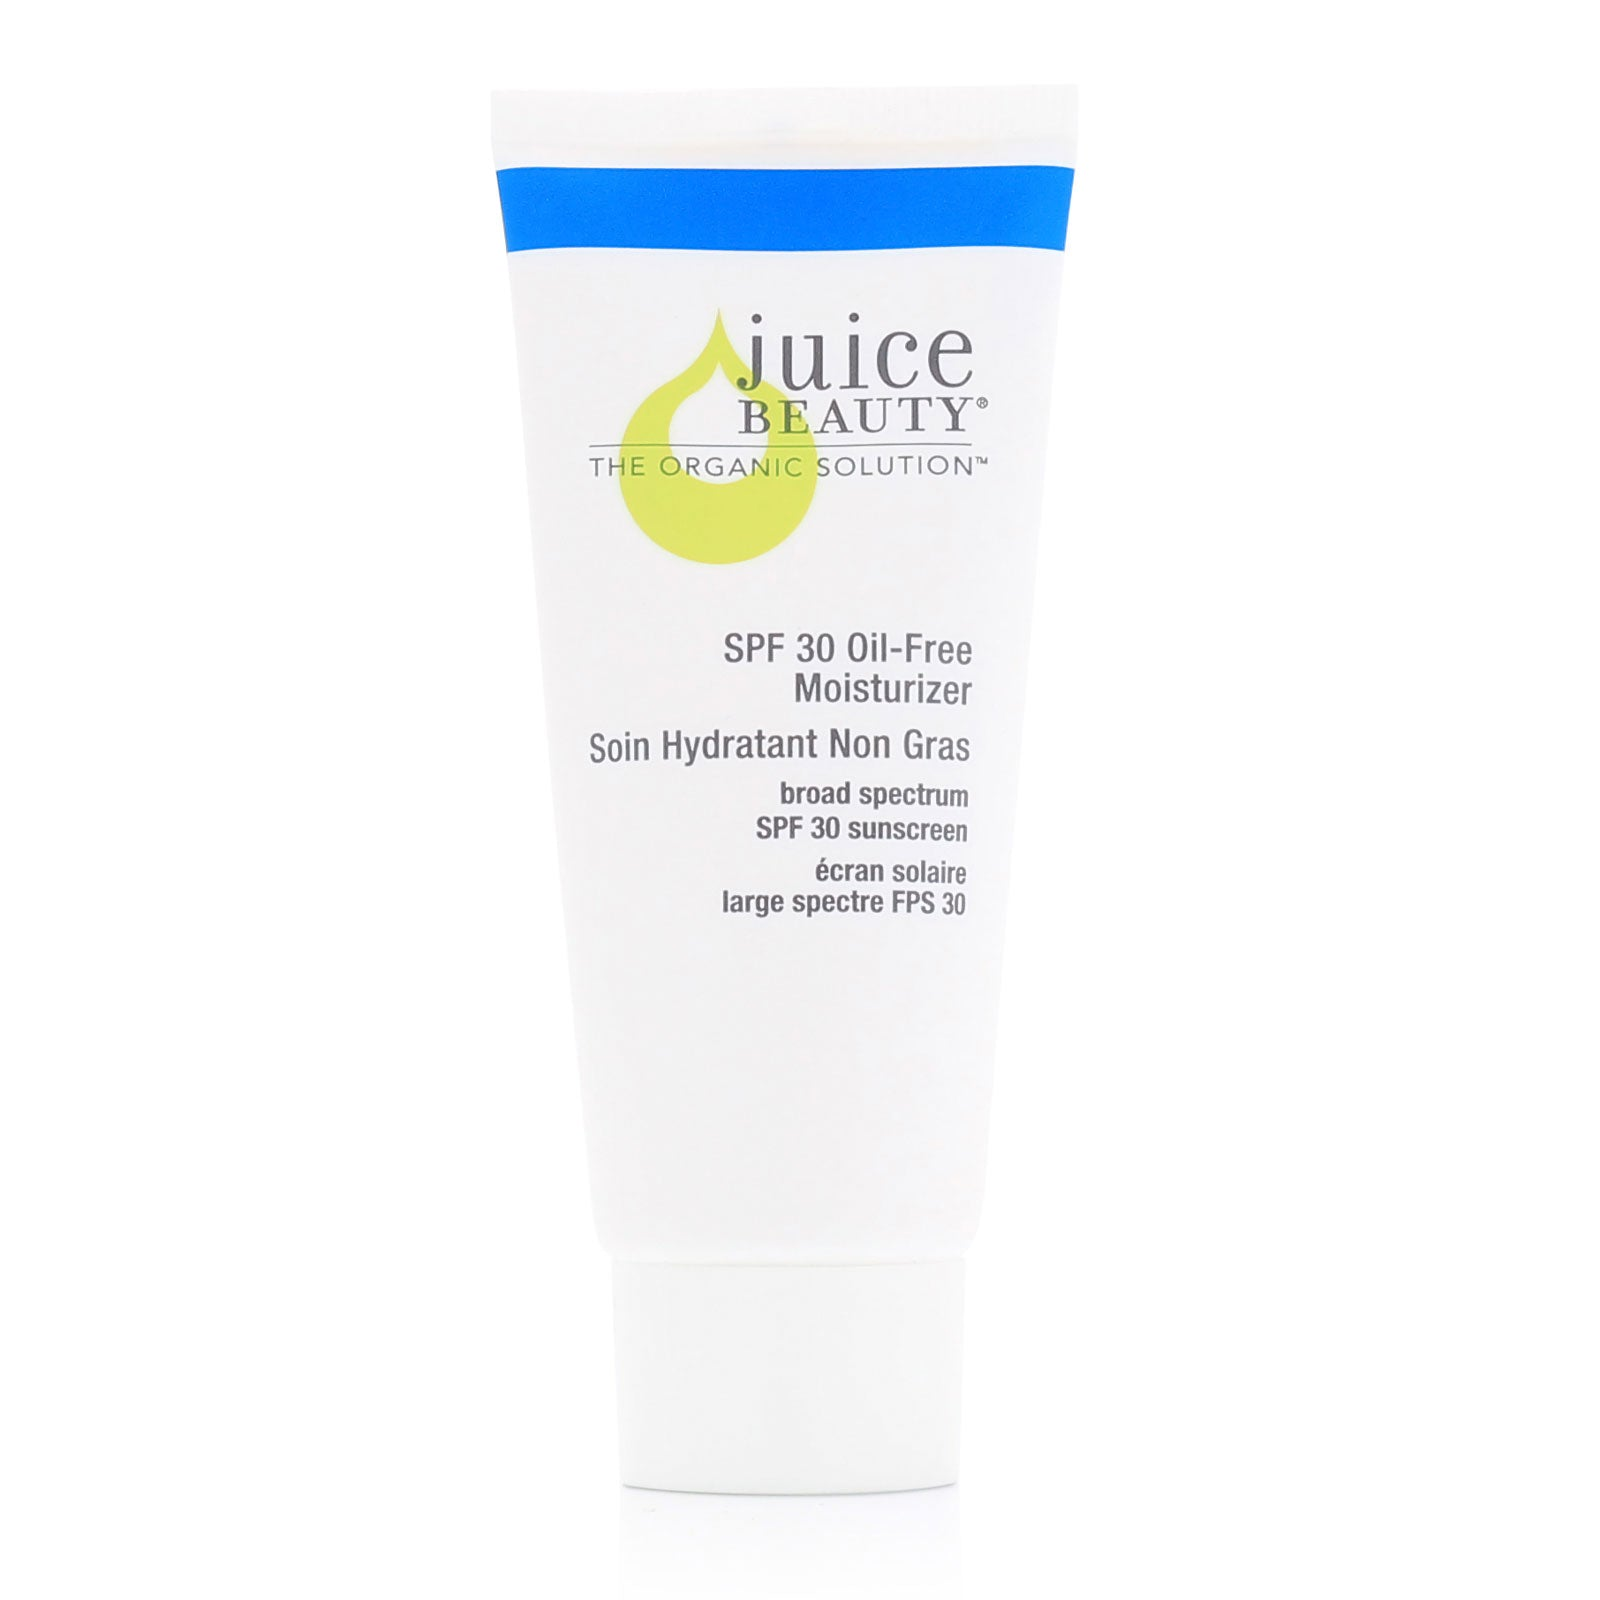 Juice Beauty SPF30 Oil-Free Moisturizer 60ml